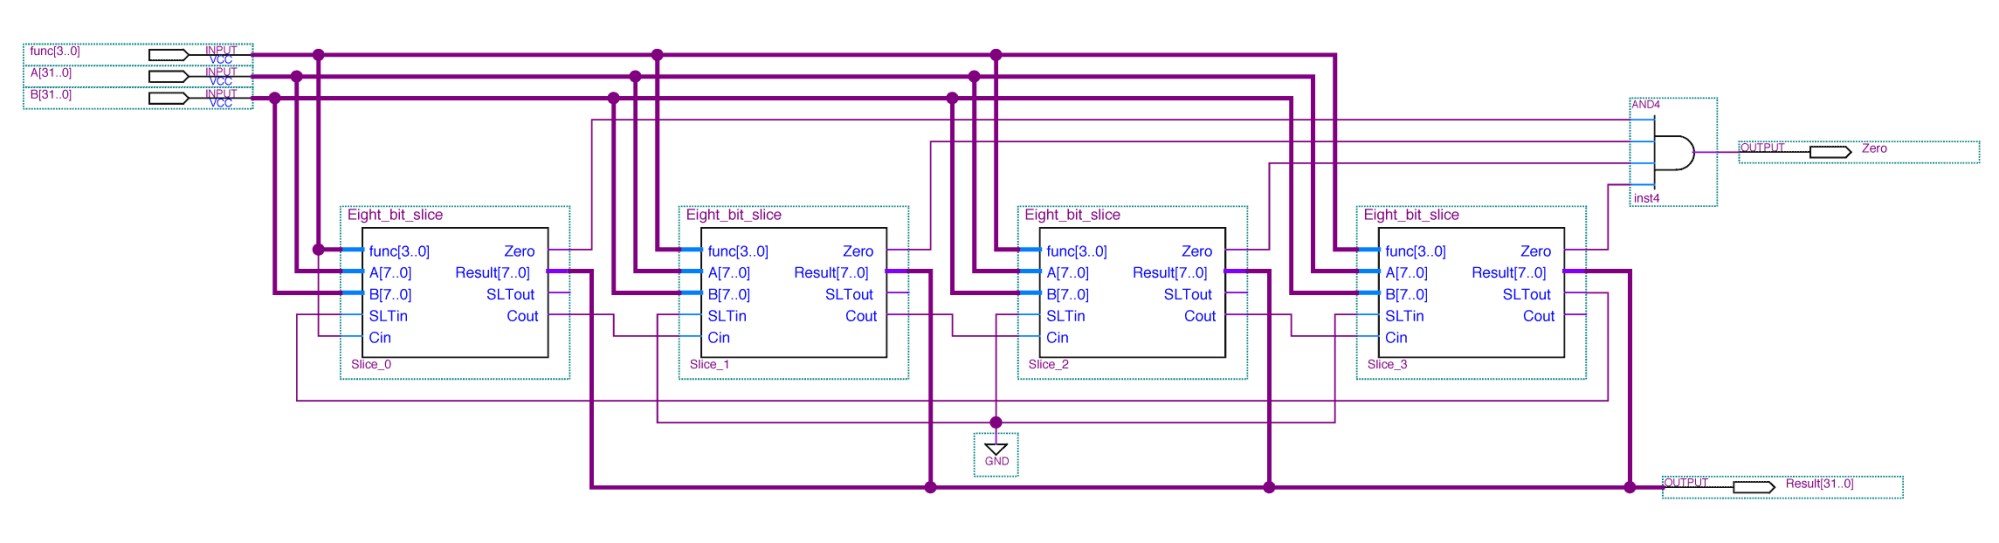 hight resolution of mips alu constructed from four 8 bit slices